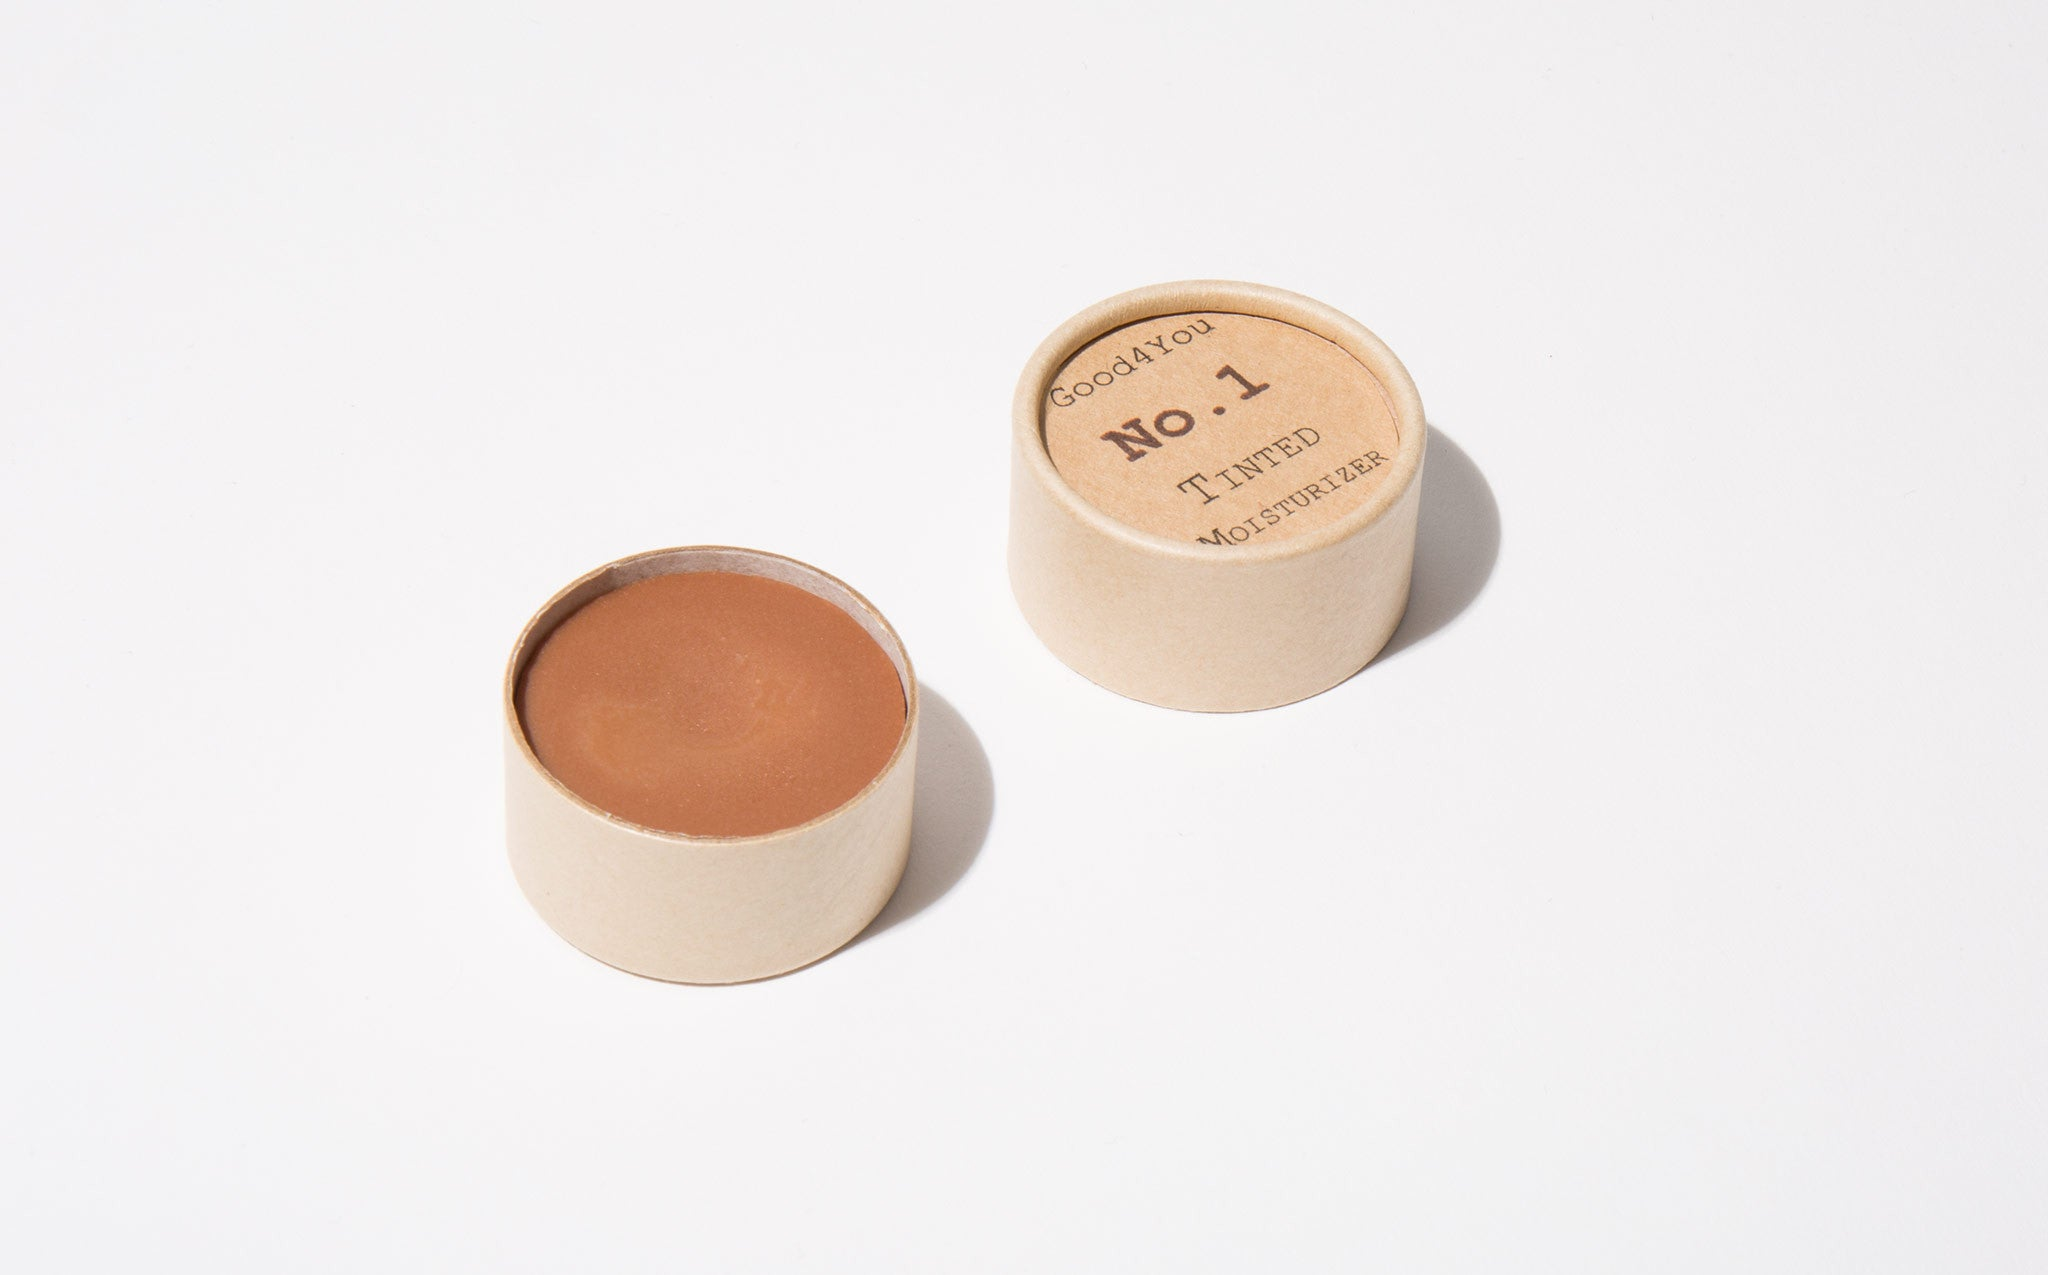 Plant Makeup Dark Foundation Balm No. 1